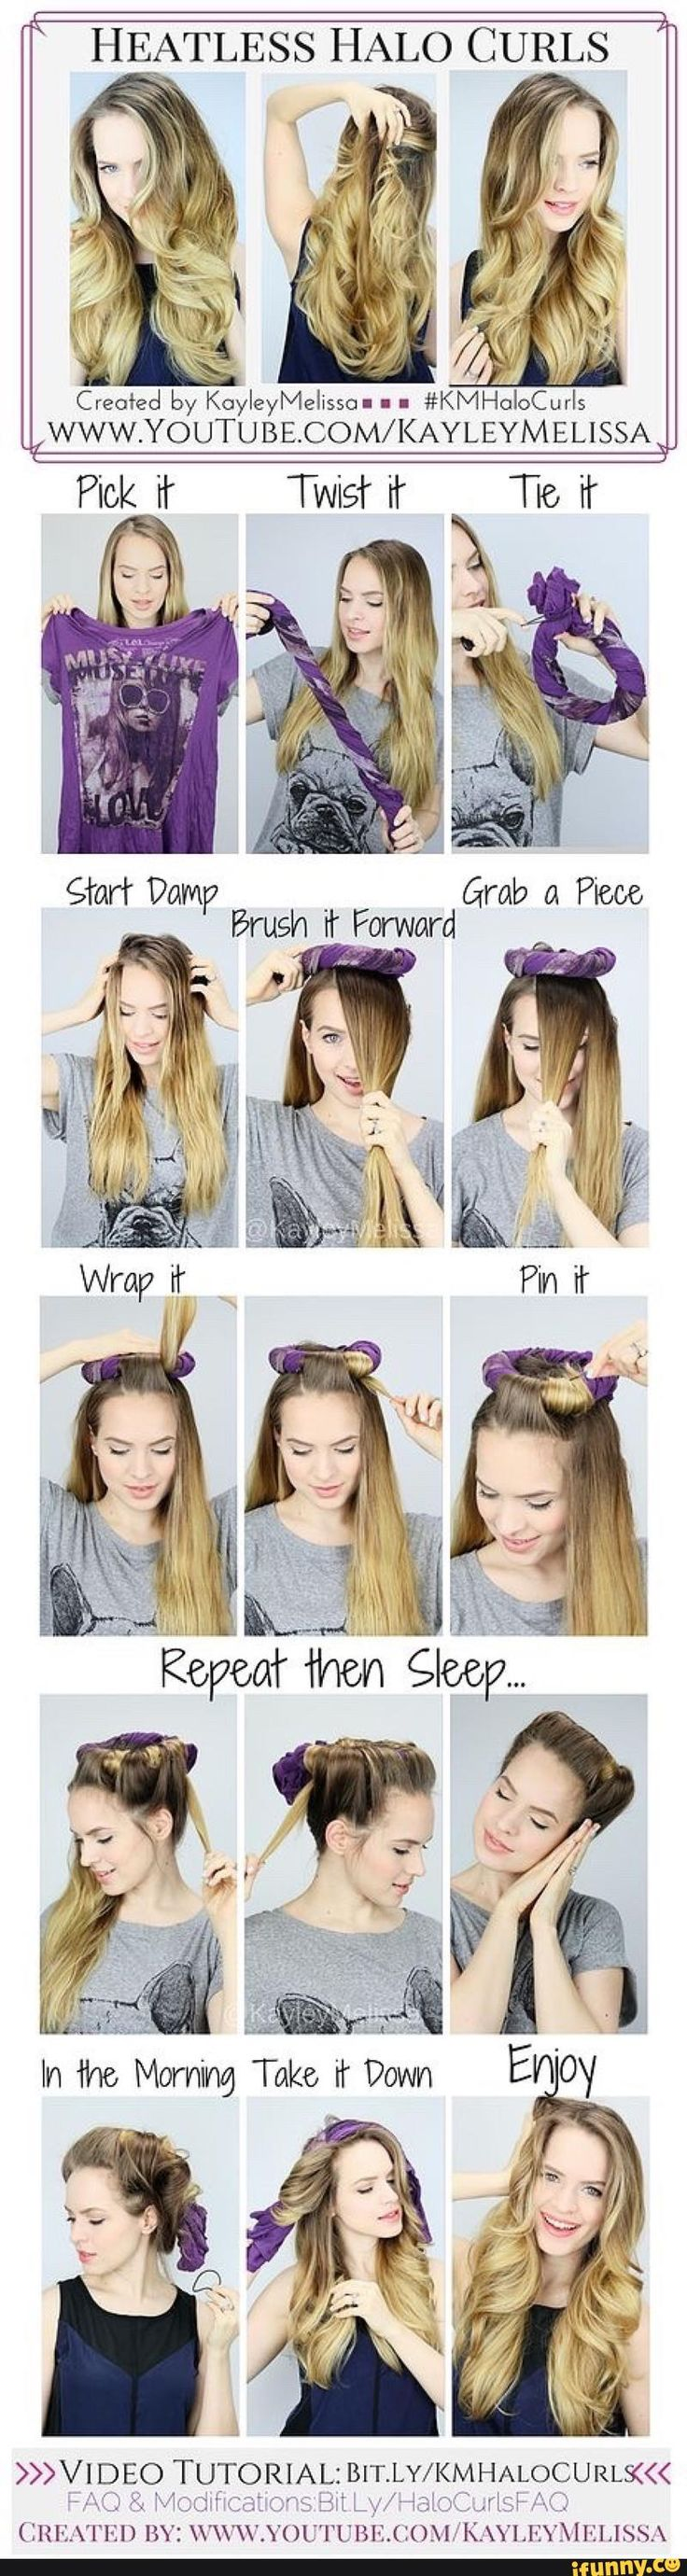 12 best hairstyles images on Pinterest | Hair makeup, Hair ideas and ...